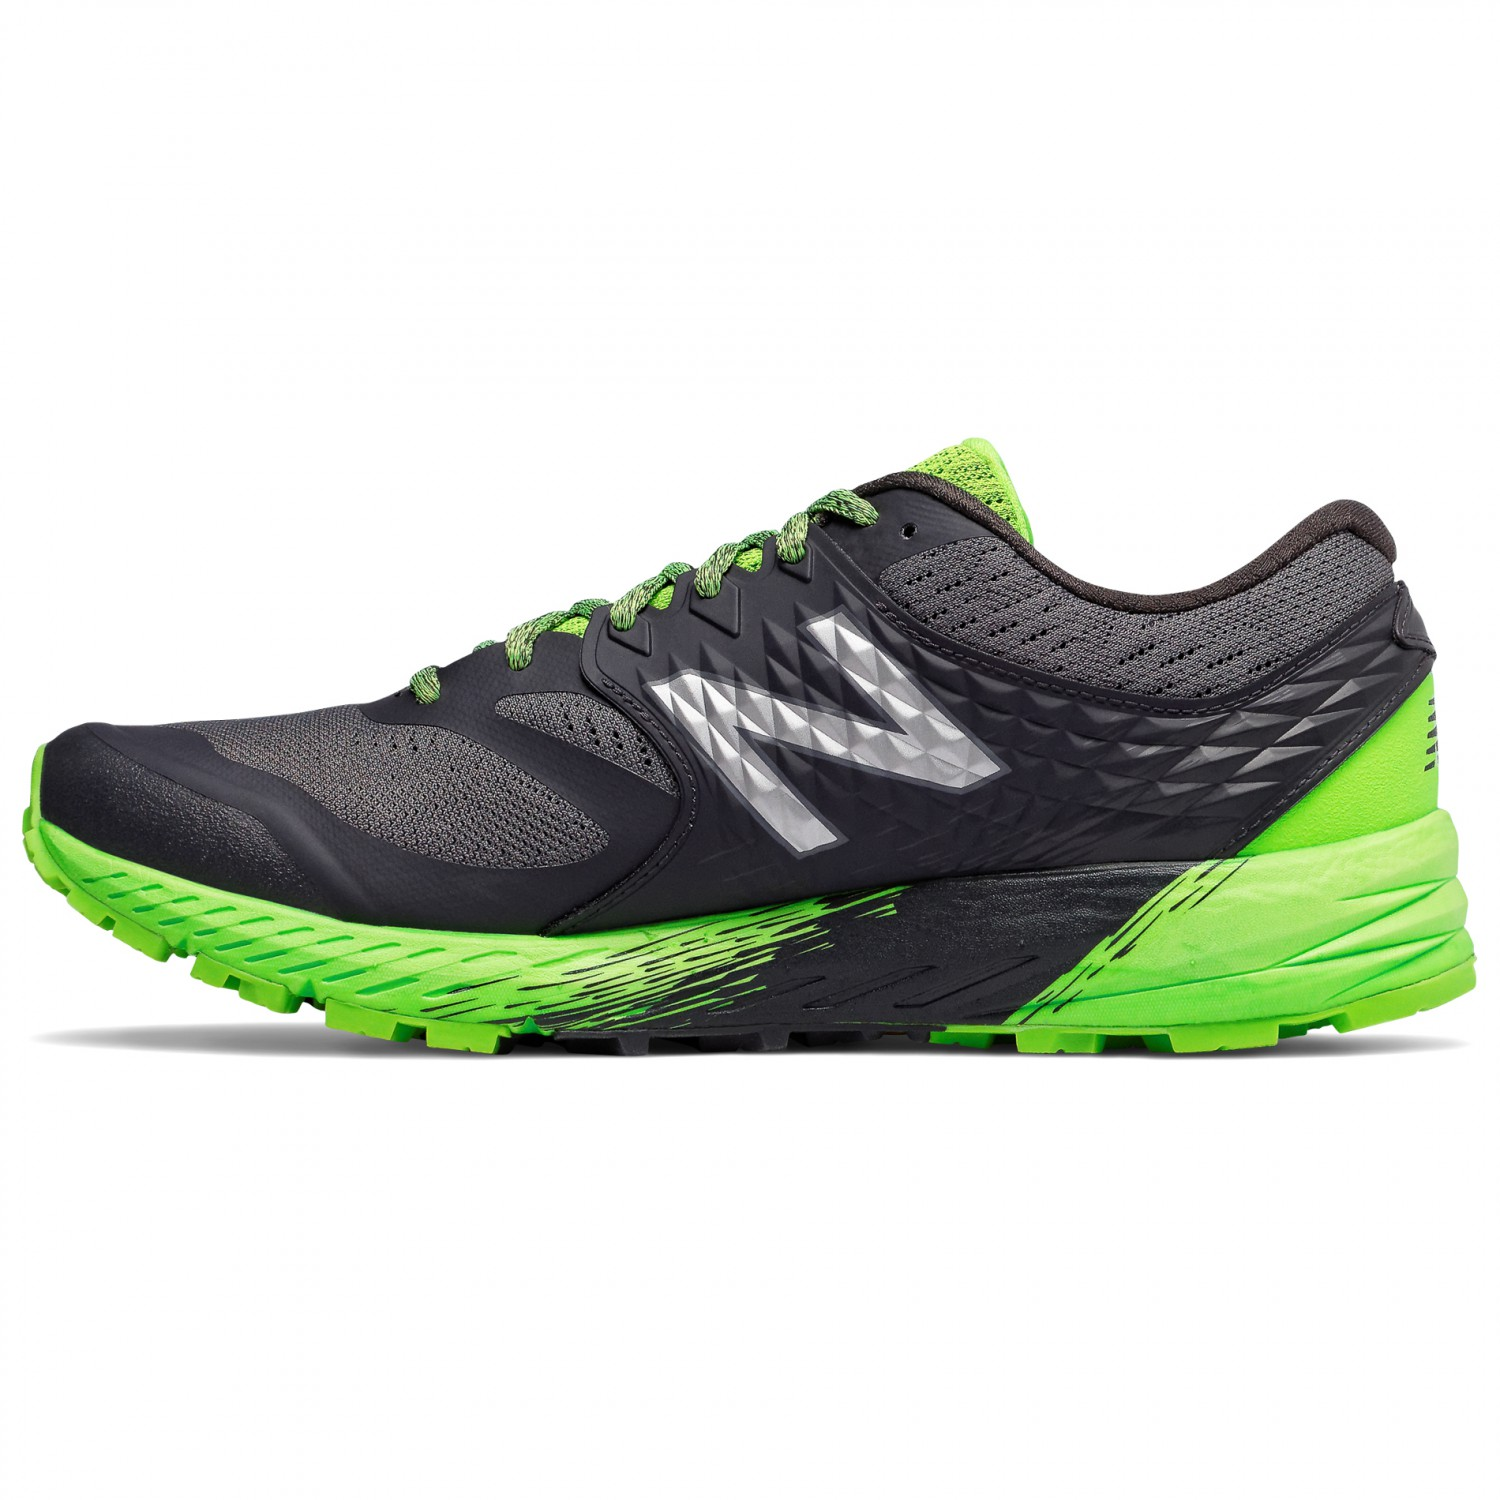 5056635ad79a New Balance Summit K.O.M. - Trail Running Shoes Men's | Free UK ...